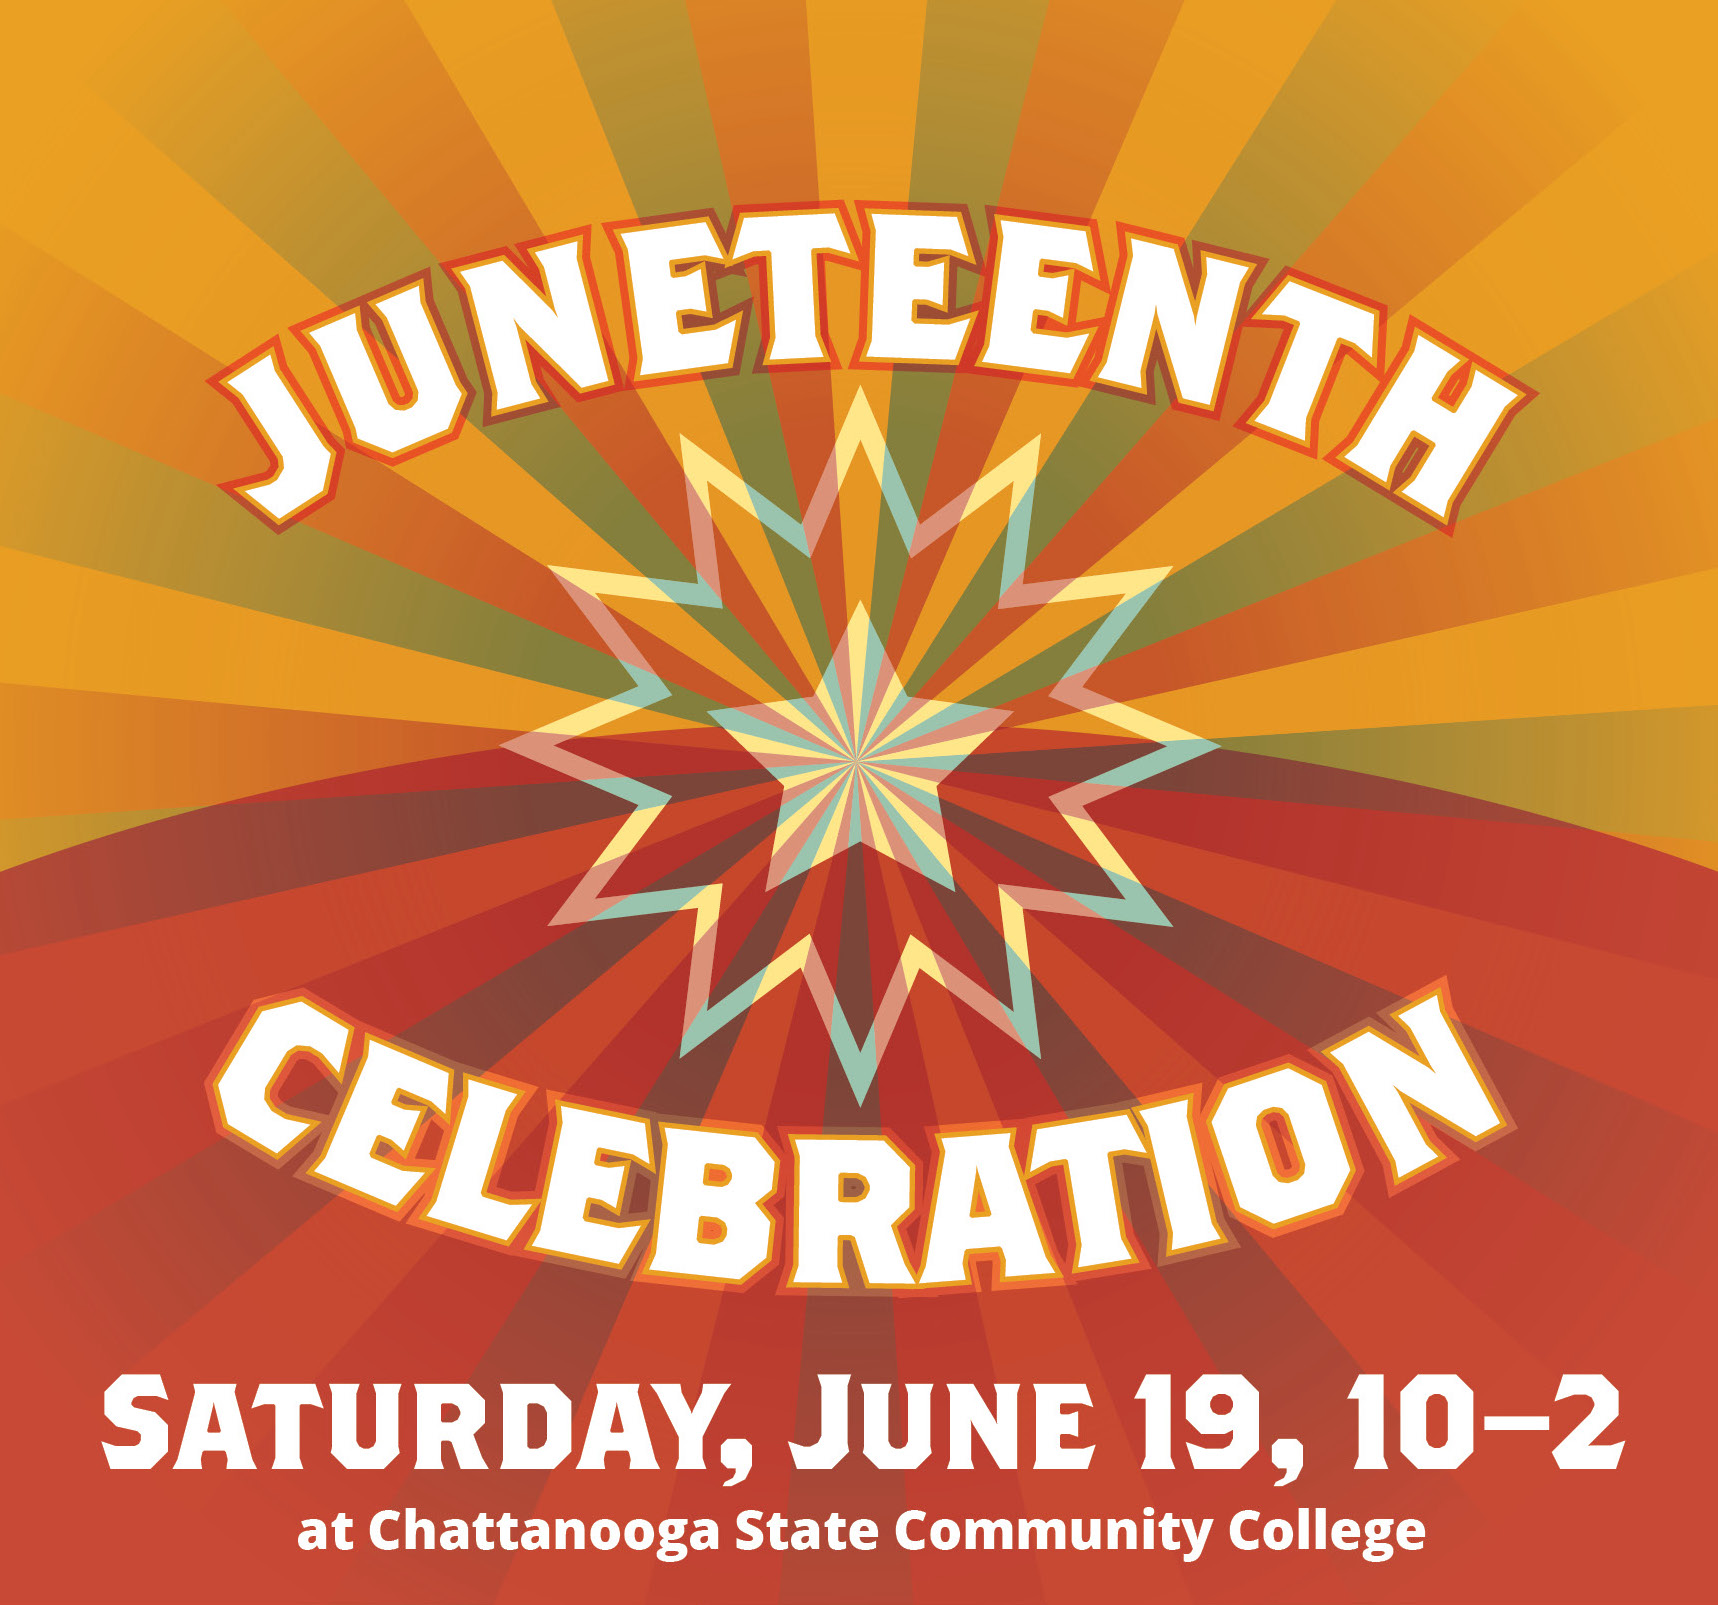 Juneteenth Celebration, Saturday June 19th, 10–2 at Chattanooga State Community College